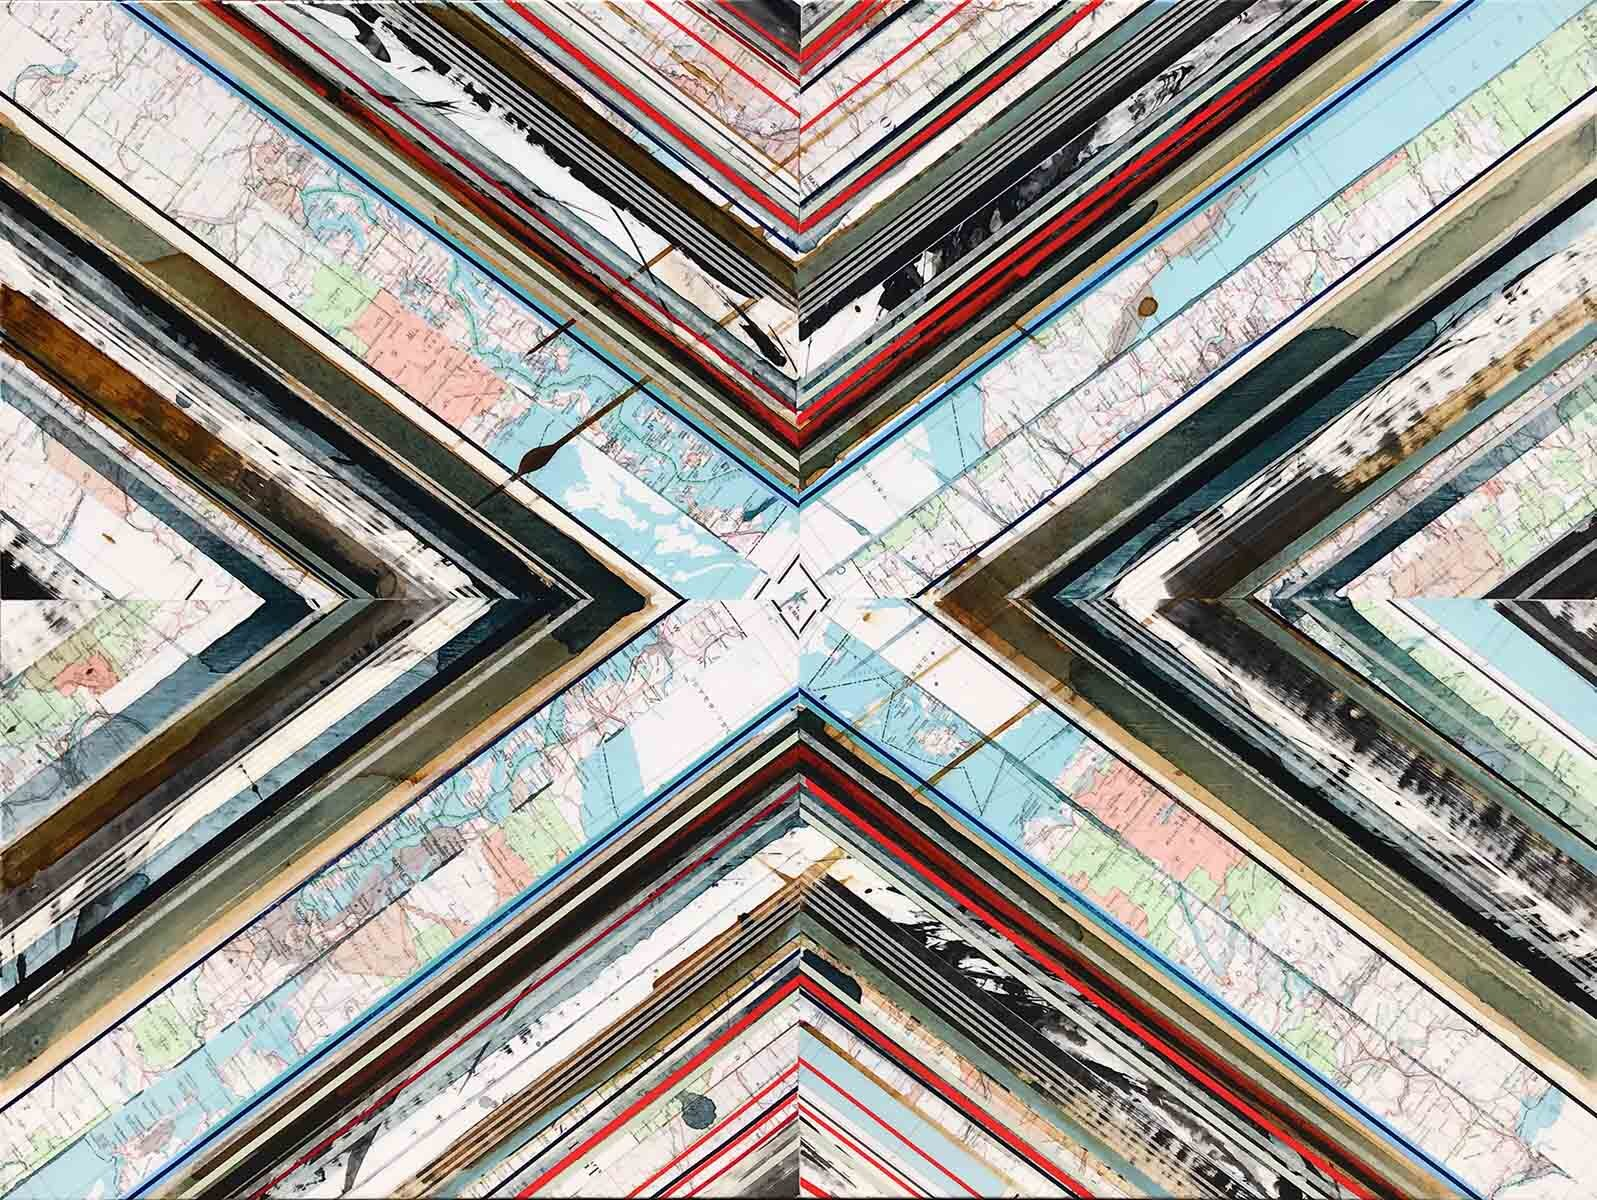 """Washington State / Blue and Red / Mapping Series / 2019 / 36""""h x 48"""" w x 1.5""""d / Vintage maps, paper collage and ink on canvas / Unframed with collaged and painted edge"""